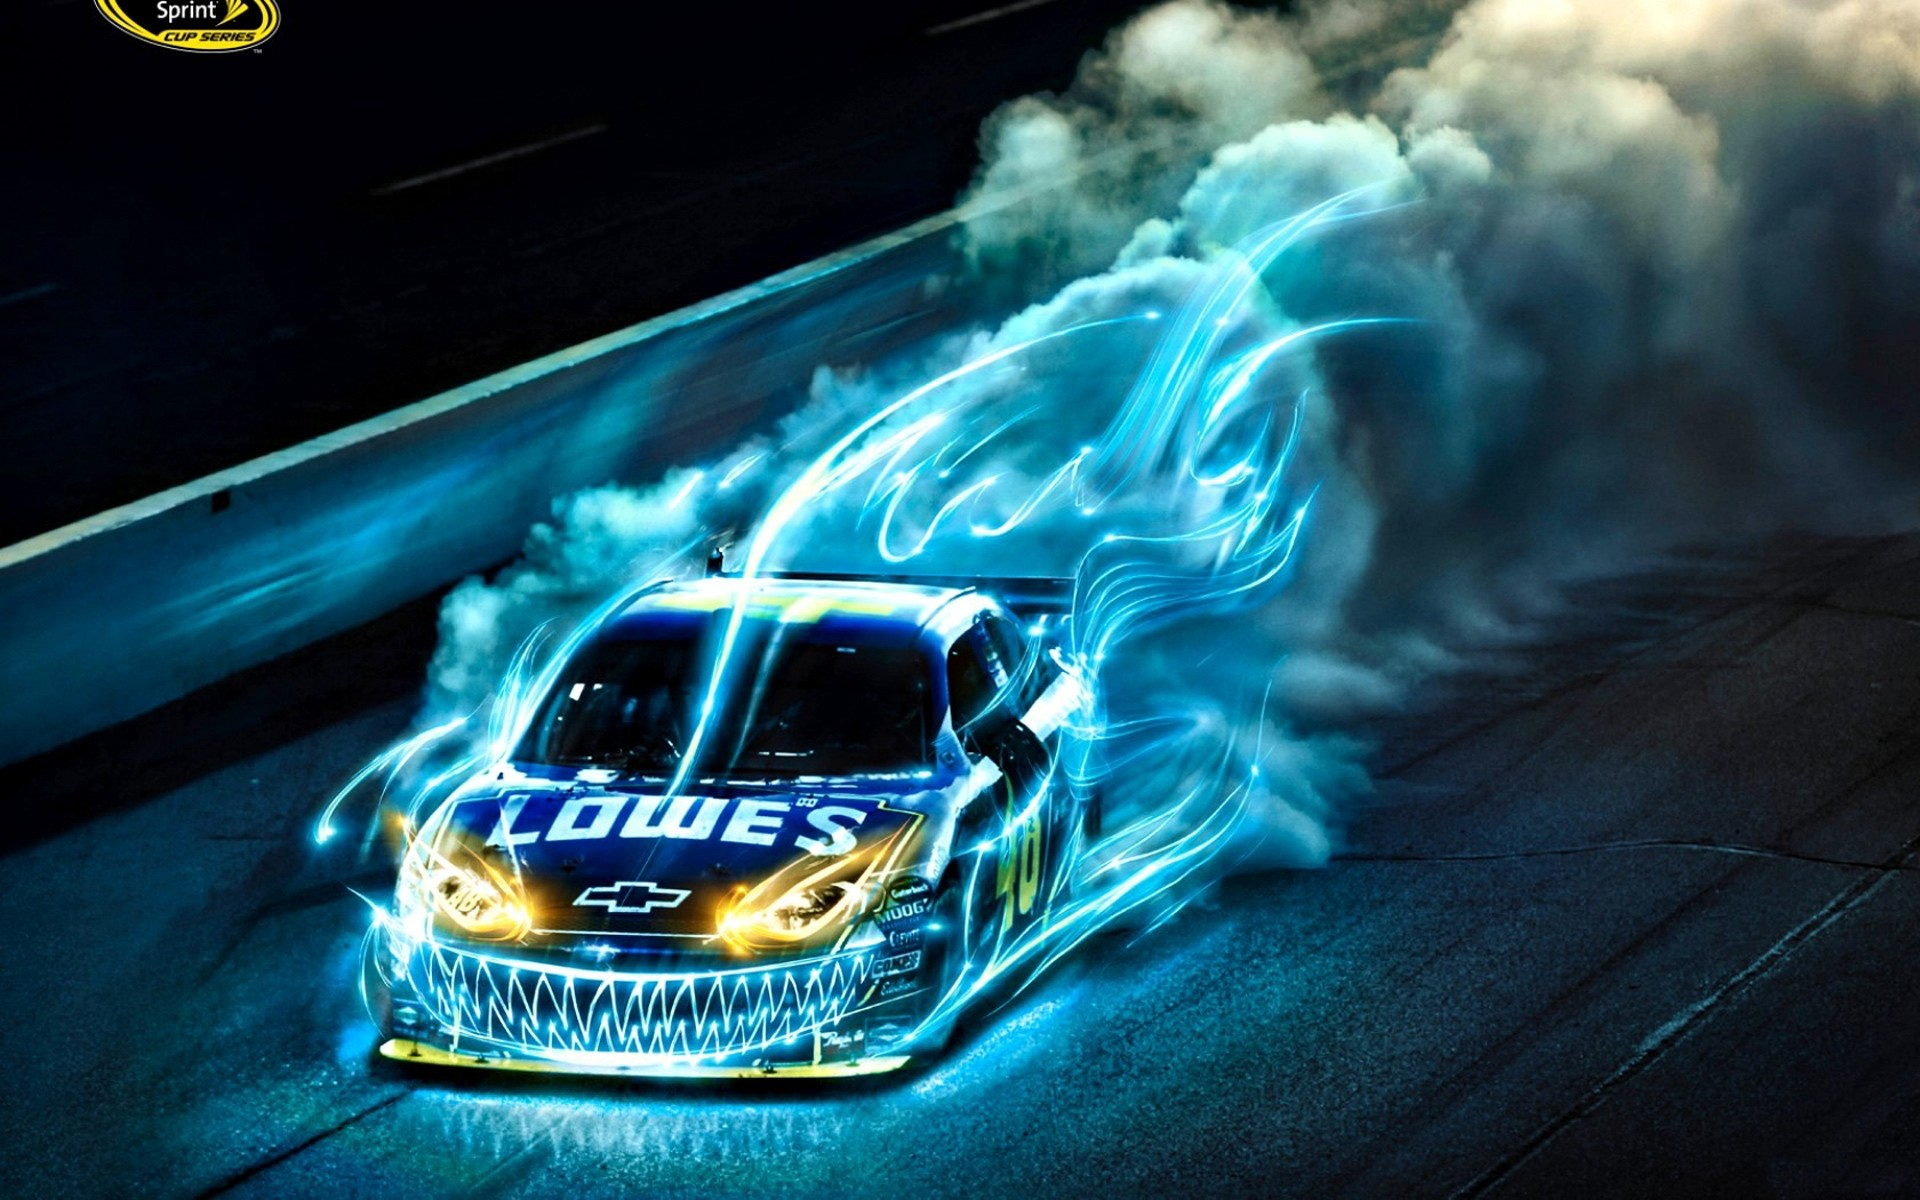 Res: 1920x1200, drag racing chevy lowes. DOWNLOAD. Wallpaper image details :